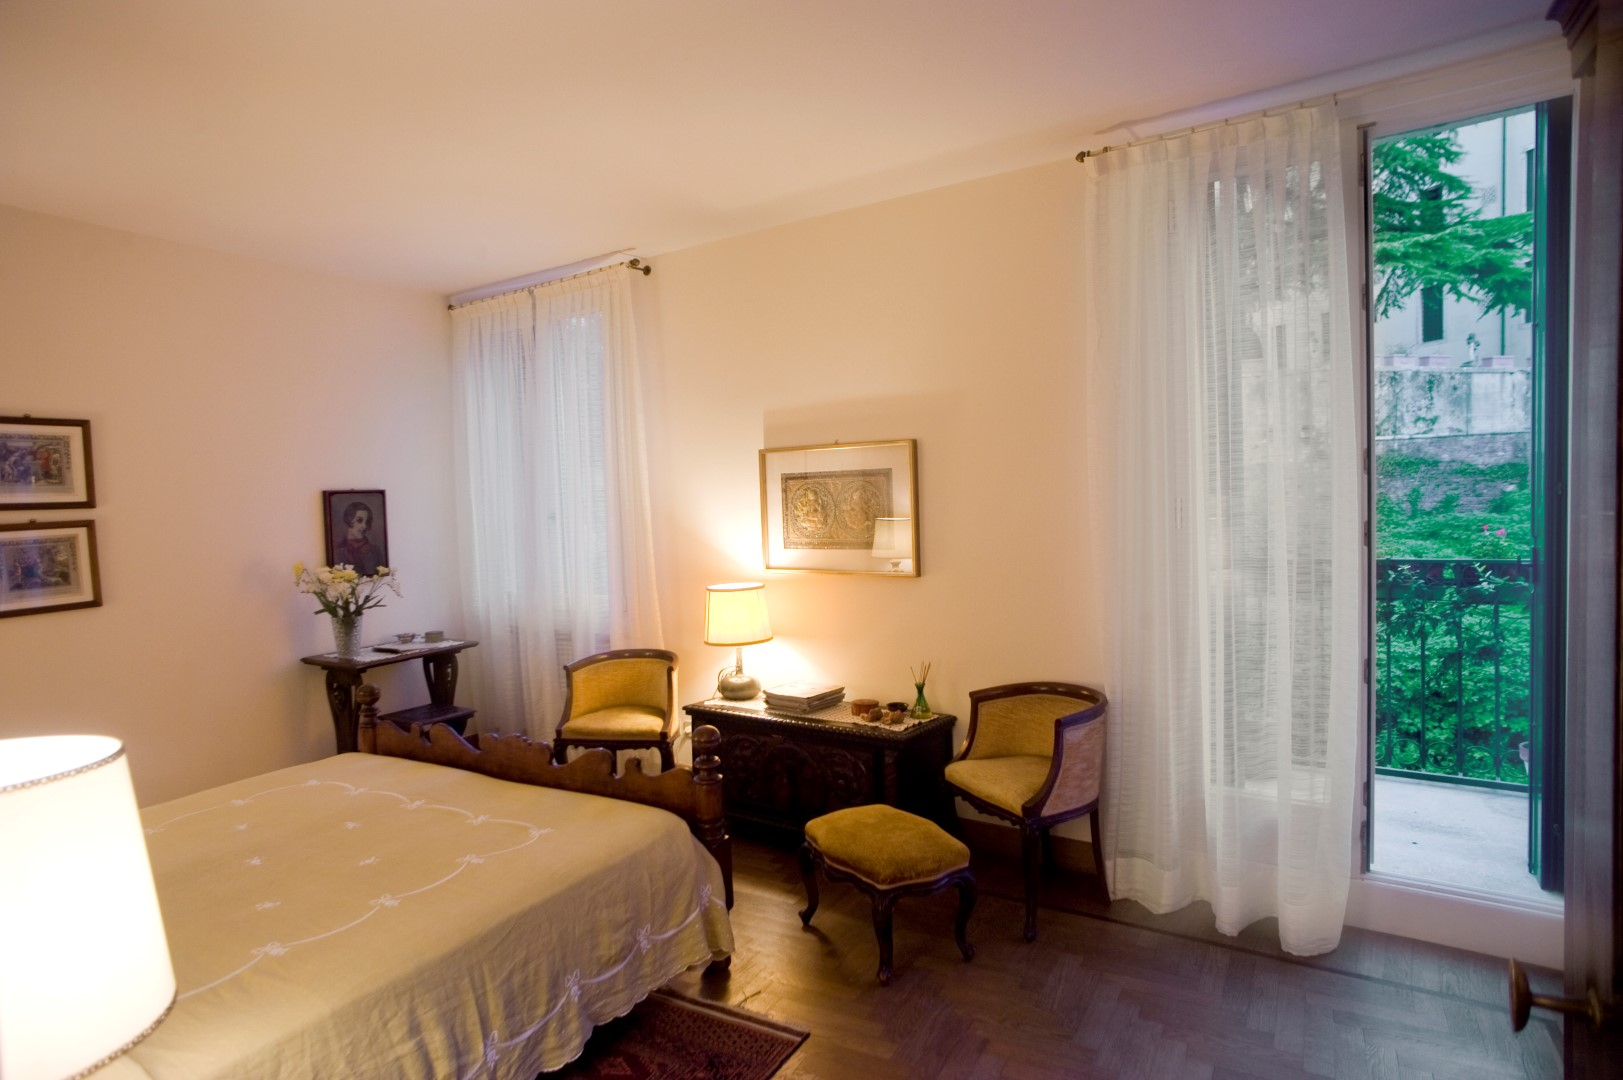 B&b al ponte Vicenza camera matrimoniale 01